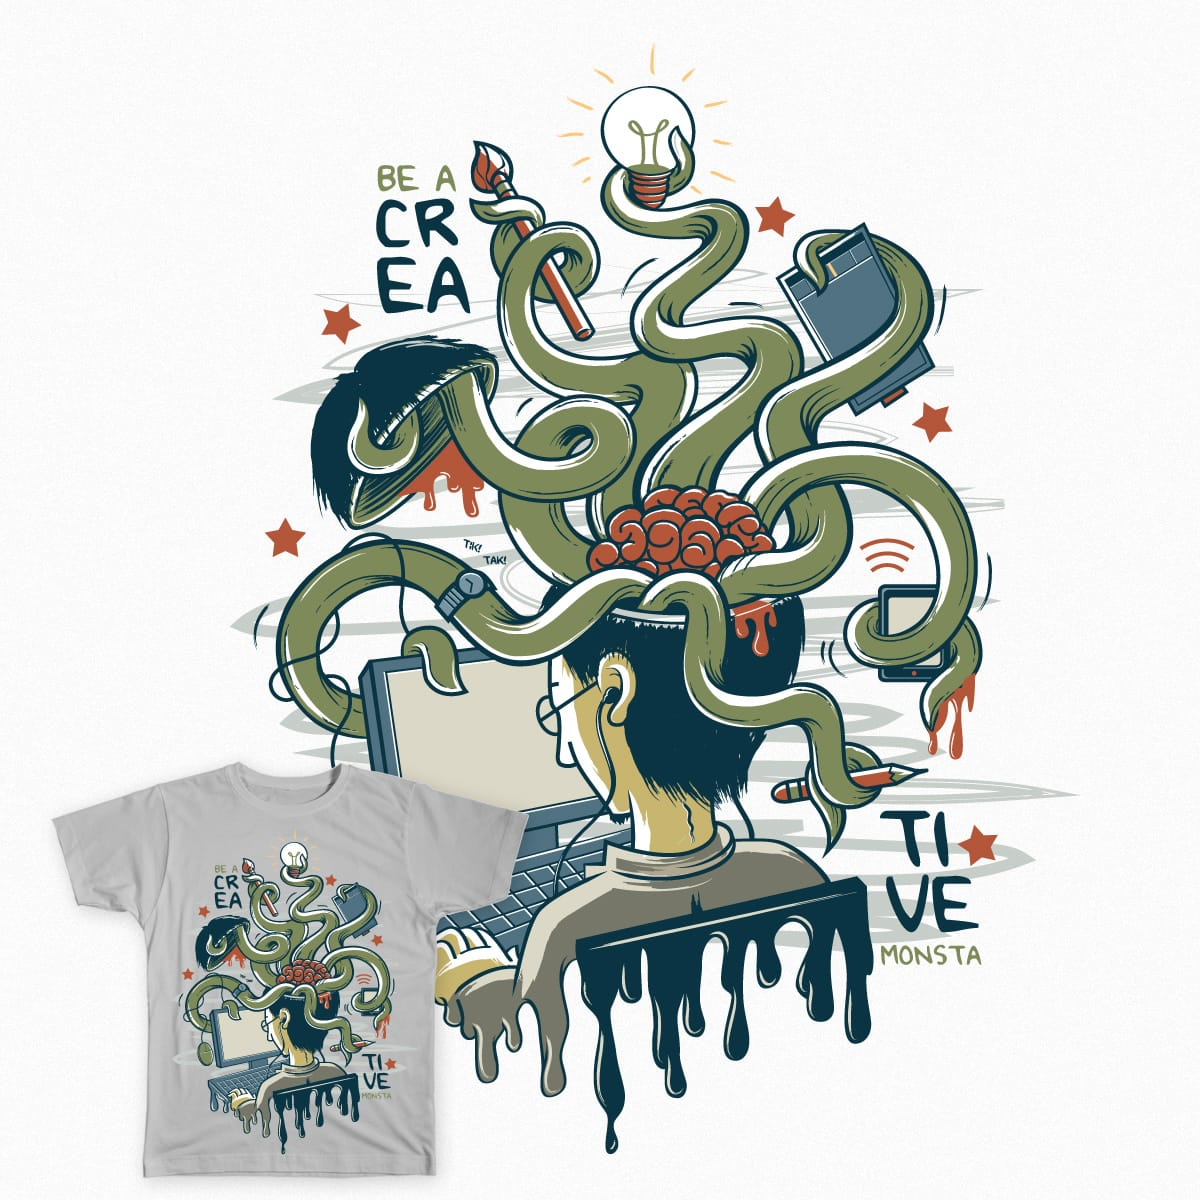 Creative Monsta by AgaOchoco on Threadless